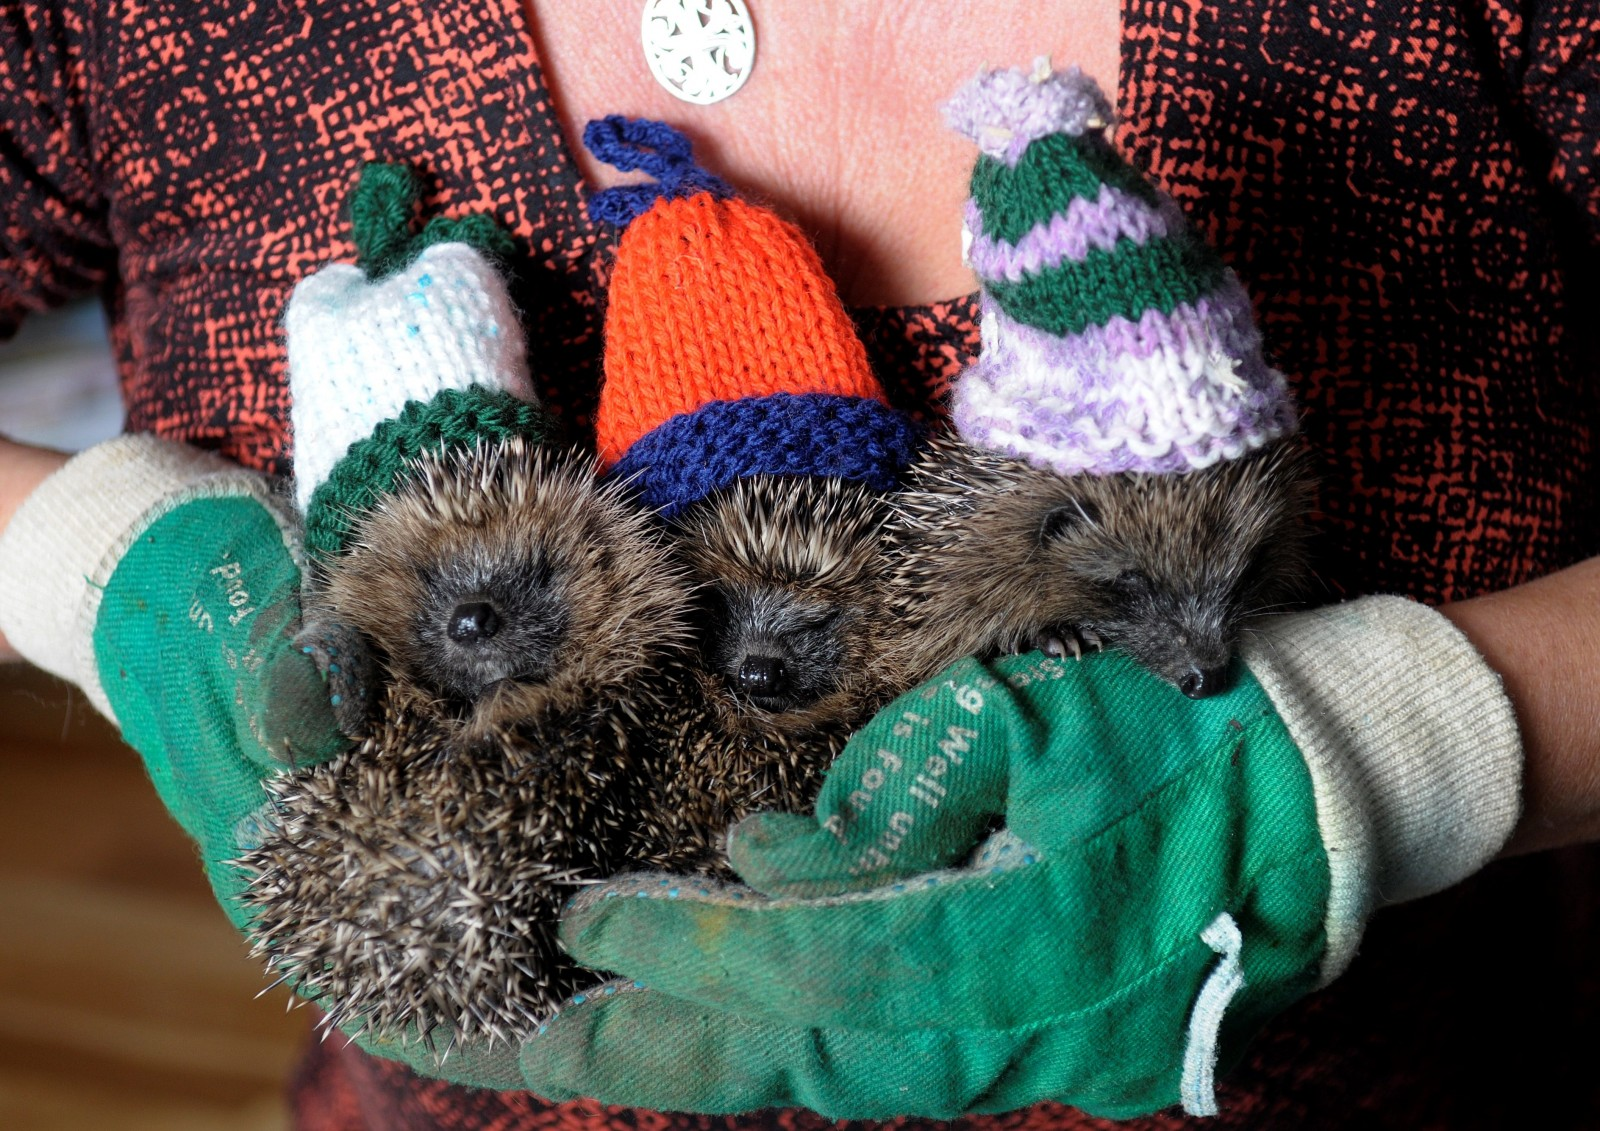 Three CUTE baby hedgehogs cosy up for the winter ahead wearing woollyhats